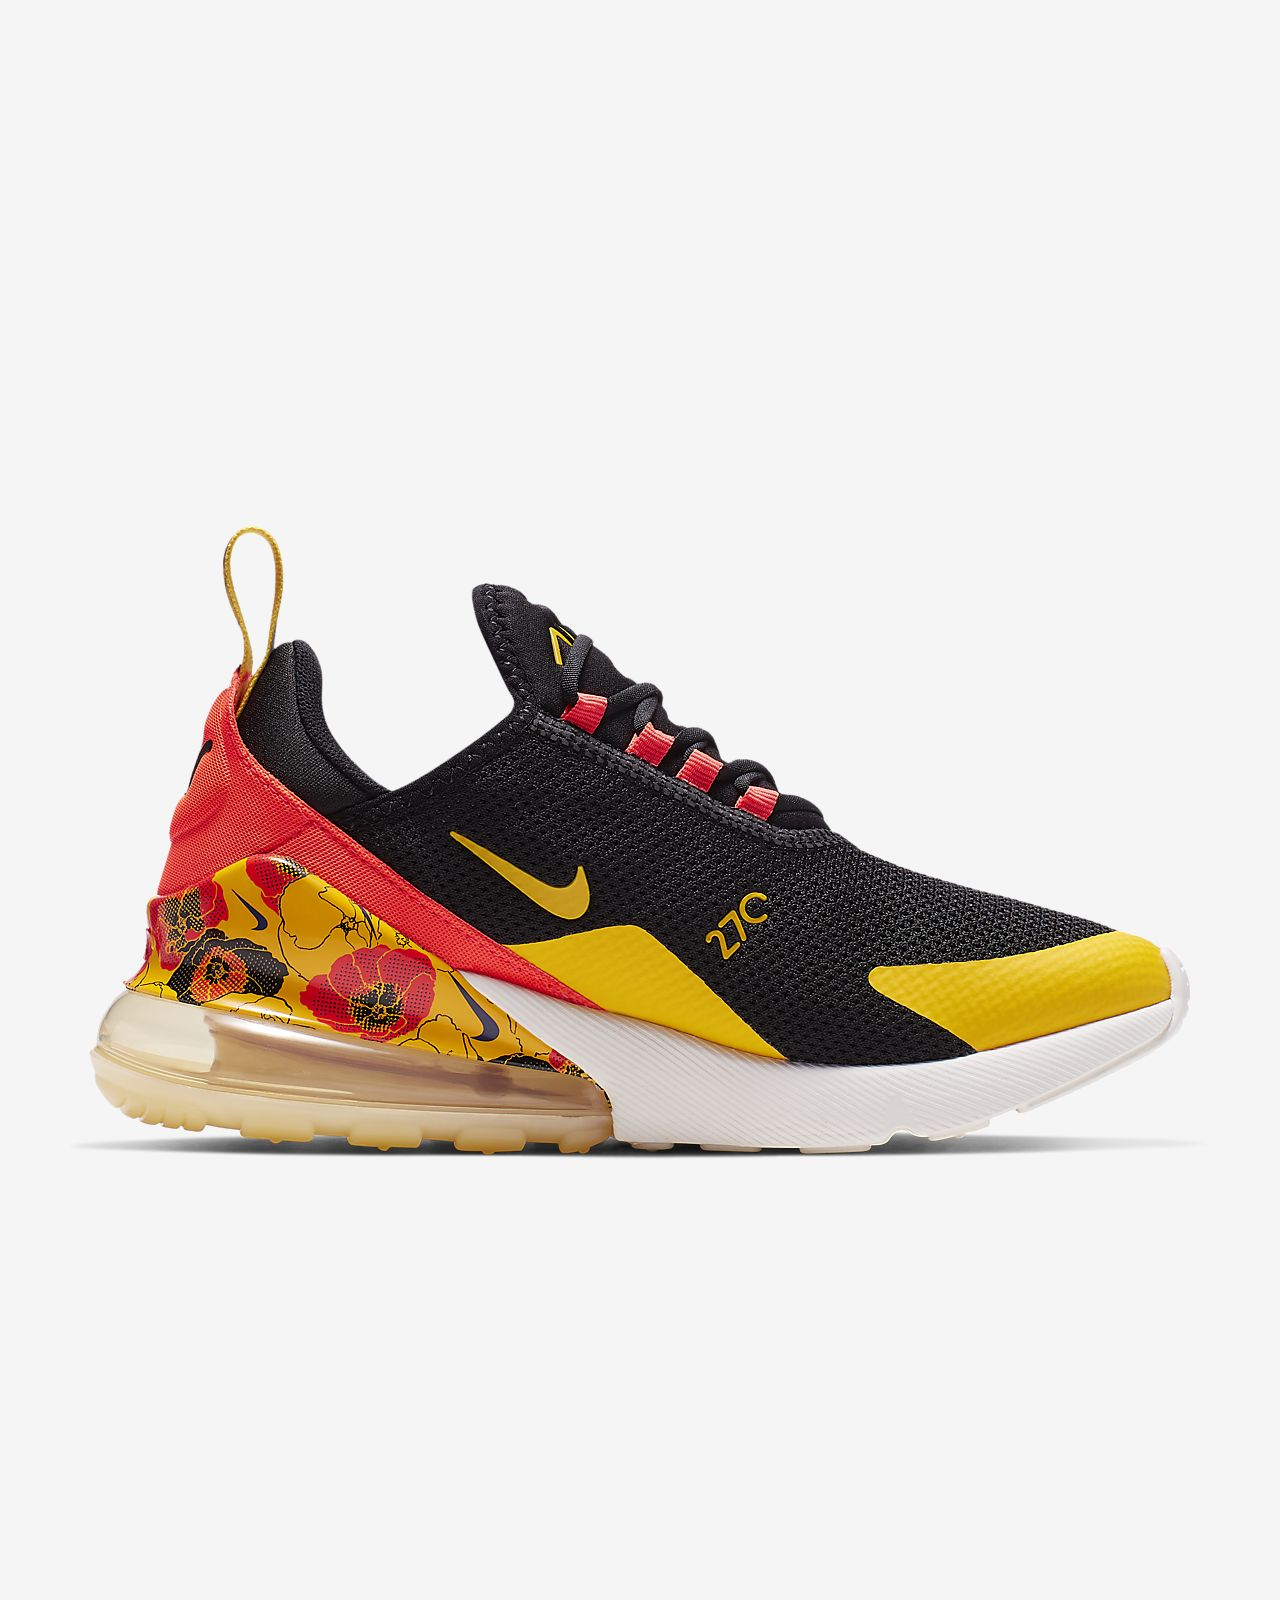 the latest f2f0b ff01e ... Nike Air Max 270 SE Floral Women s Shoe